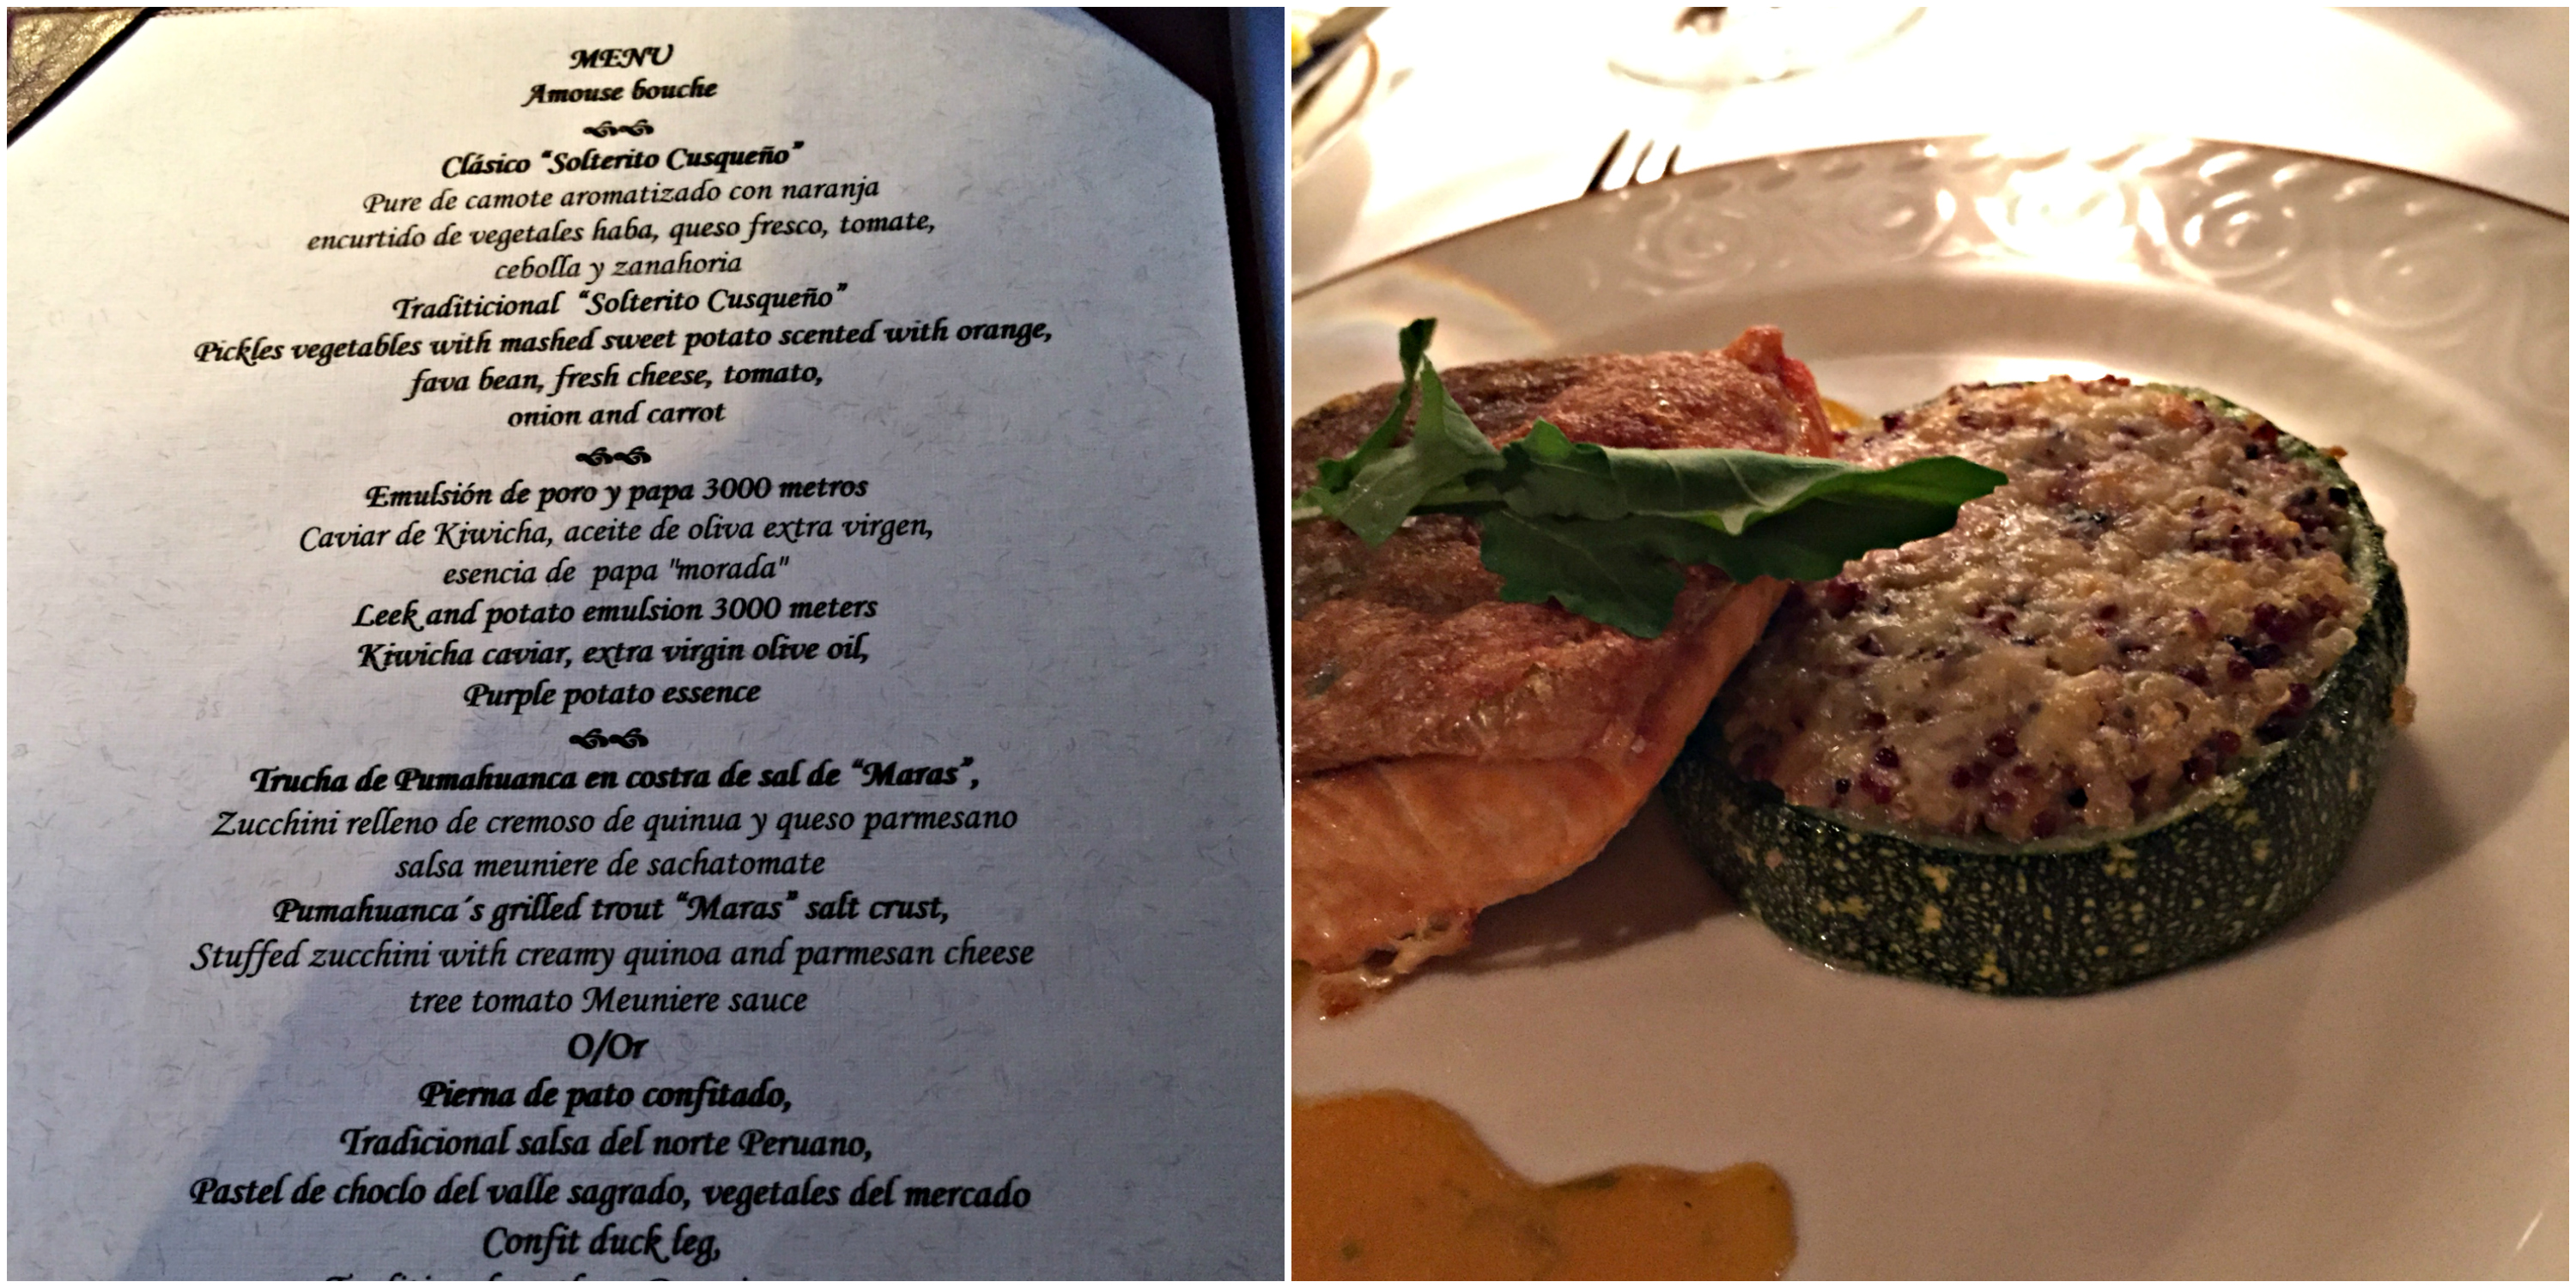 """The food was DELICIOUS! This is """"Pumahuanca's Grilled Trout """"Maras"""" Salt Crust, with stuffed zucchini with creamy quinoa and parmesan cheese, and tree tomato Muniere sauce"""""""